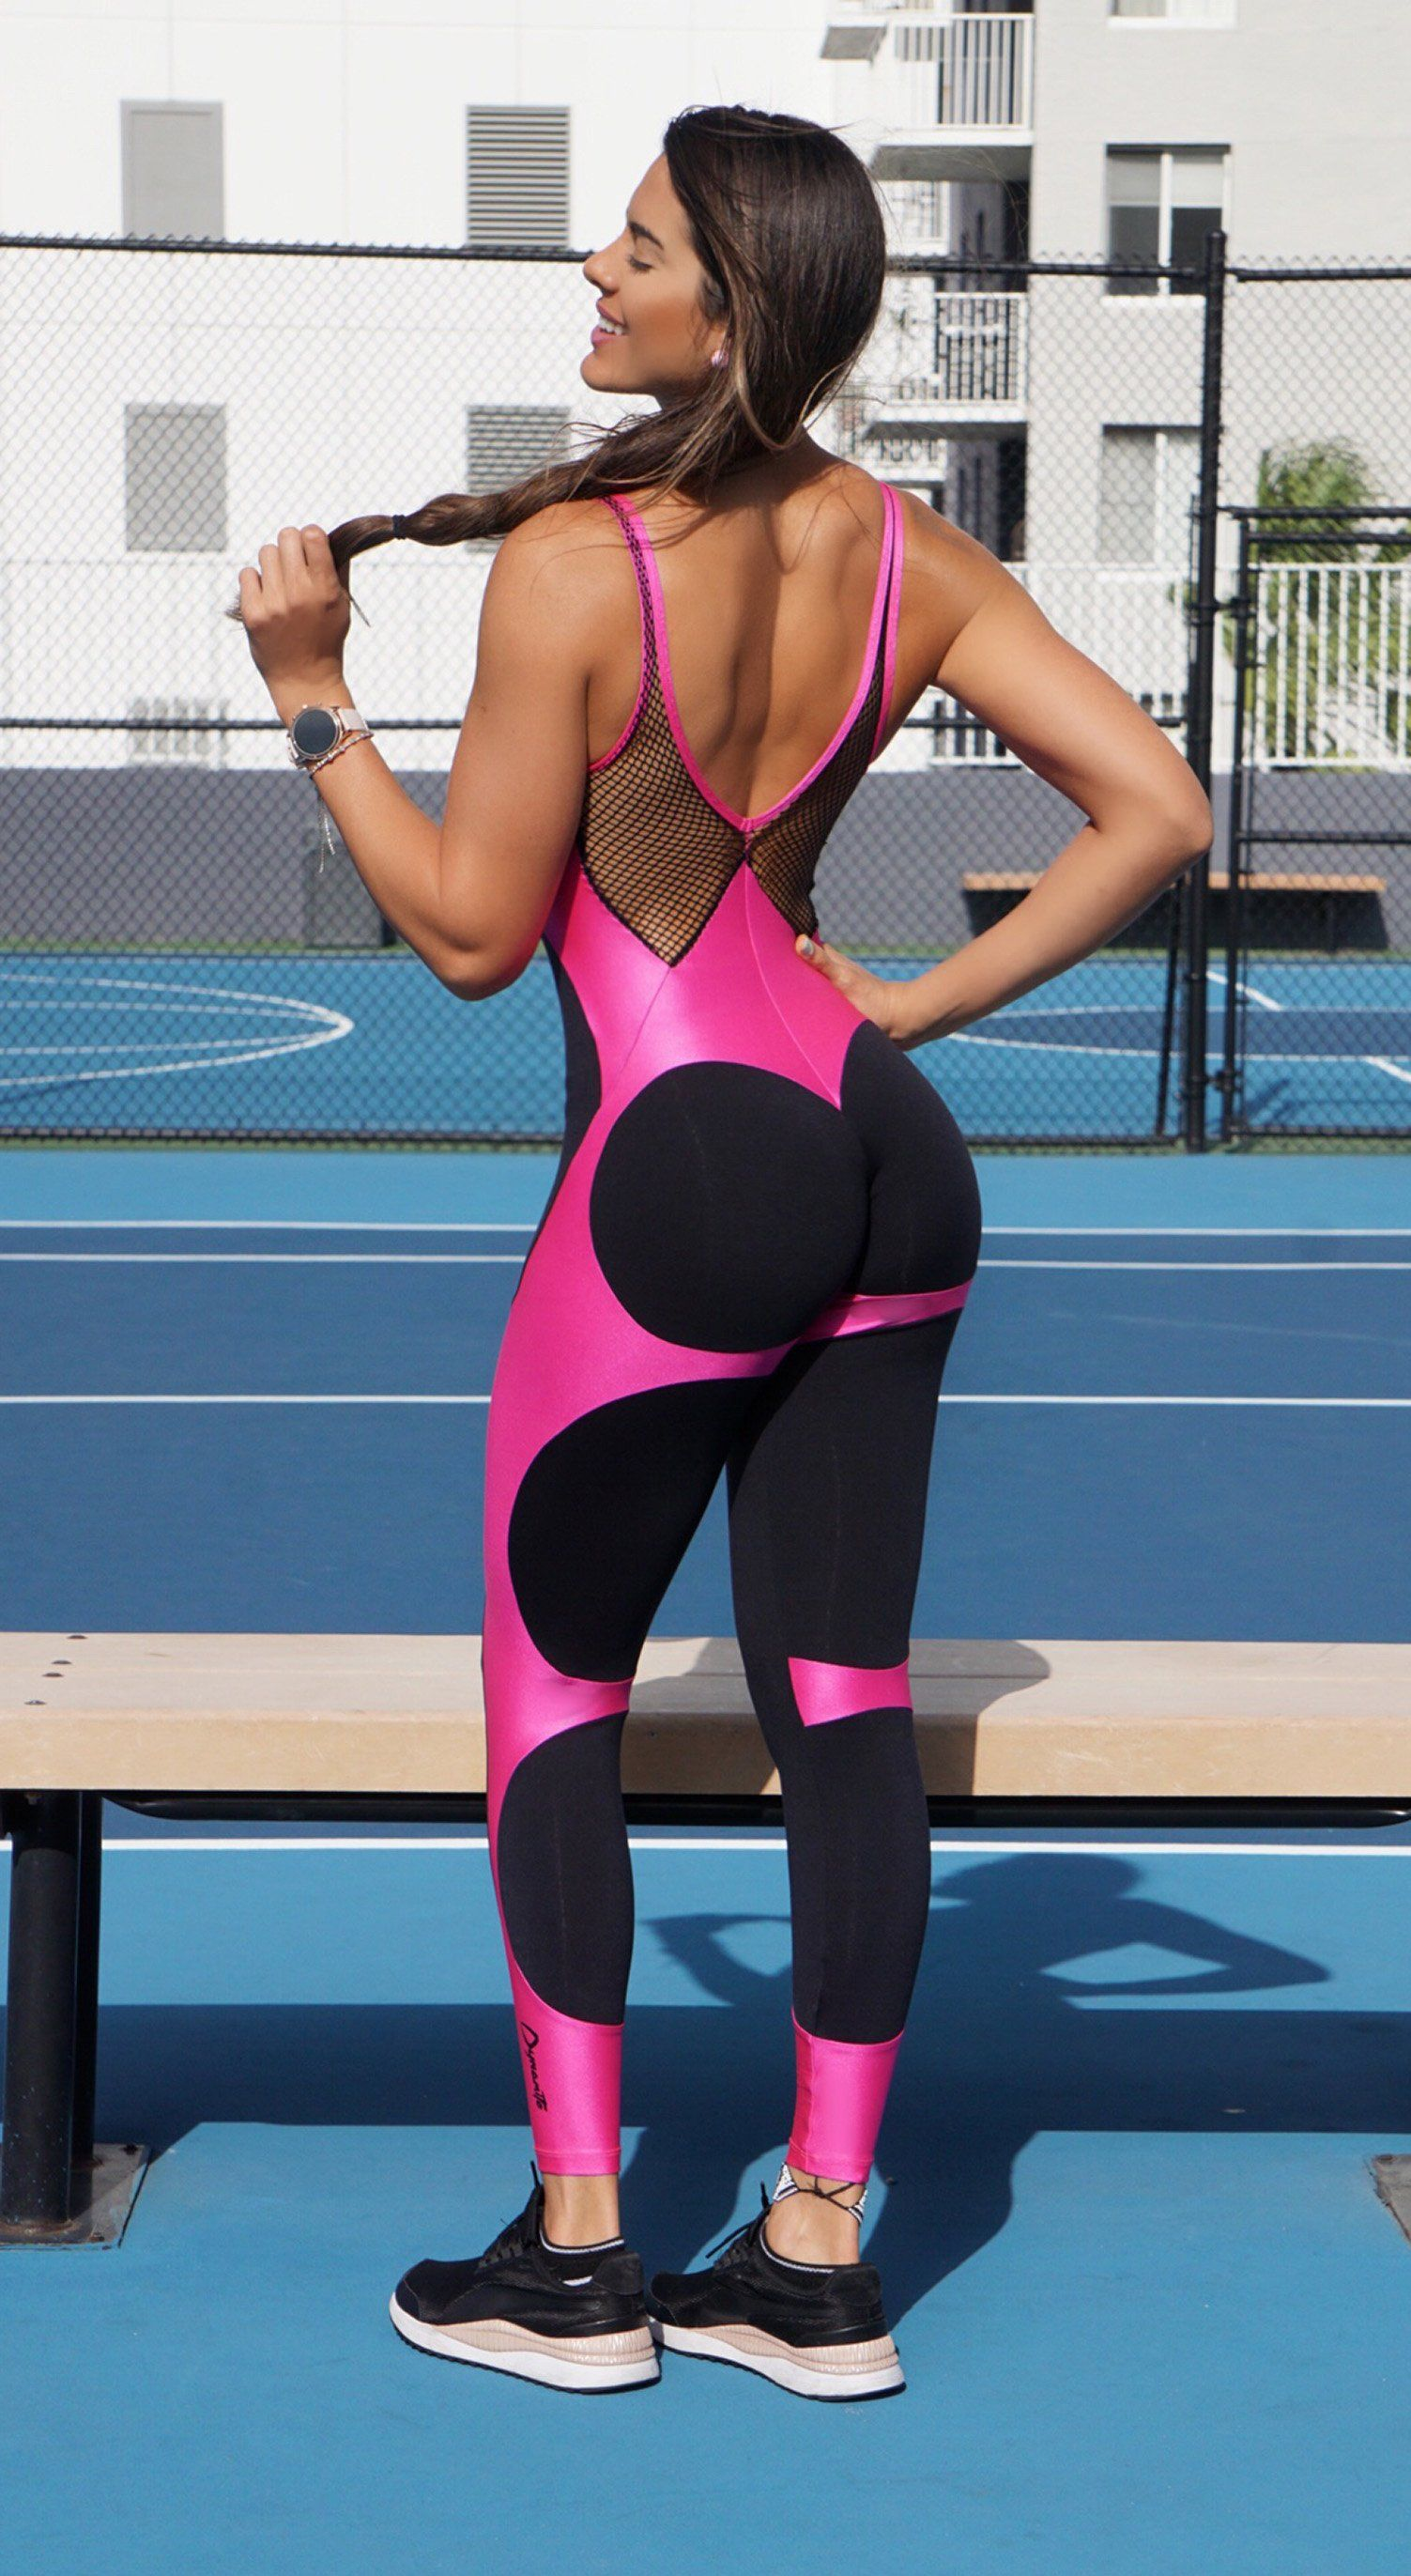 Brazilian Workout Jumpsuit  - Apple Booty Lilly Love Fitness Jumpsuit